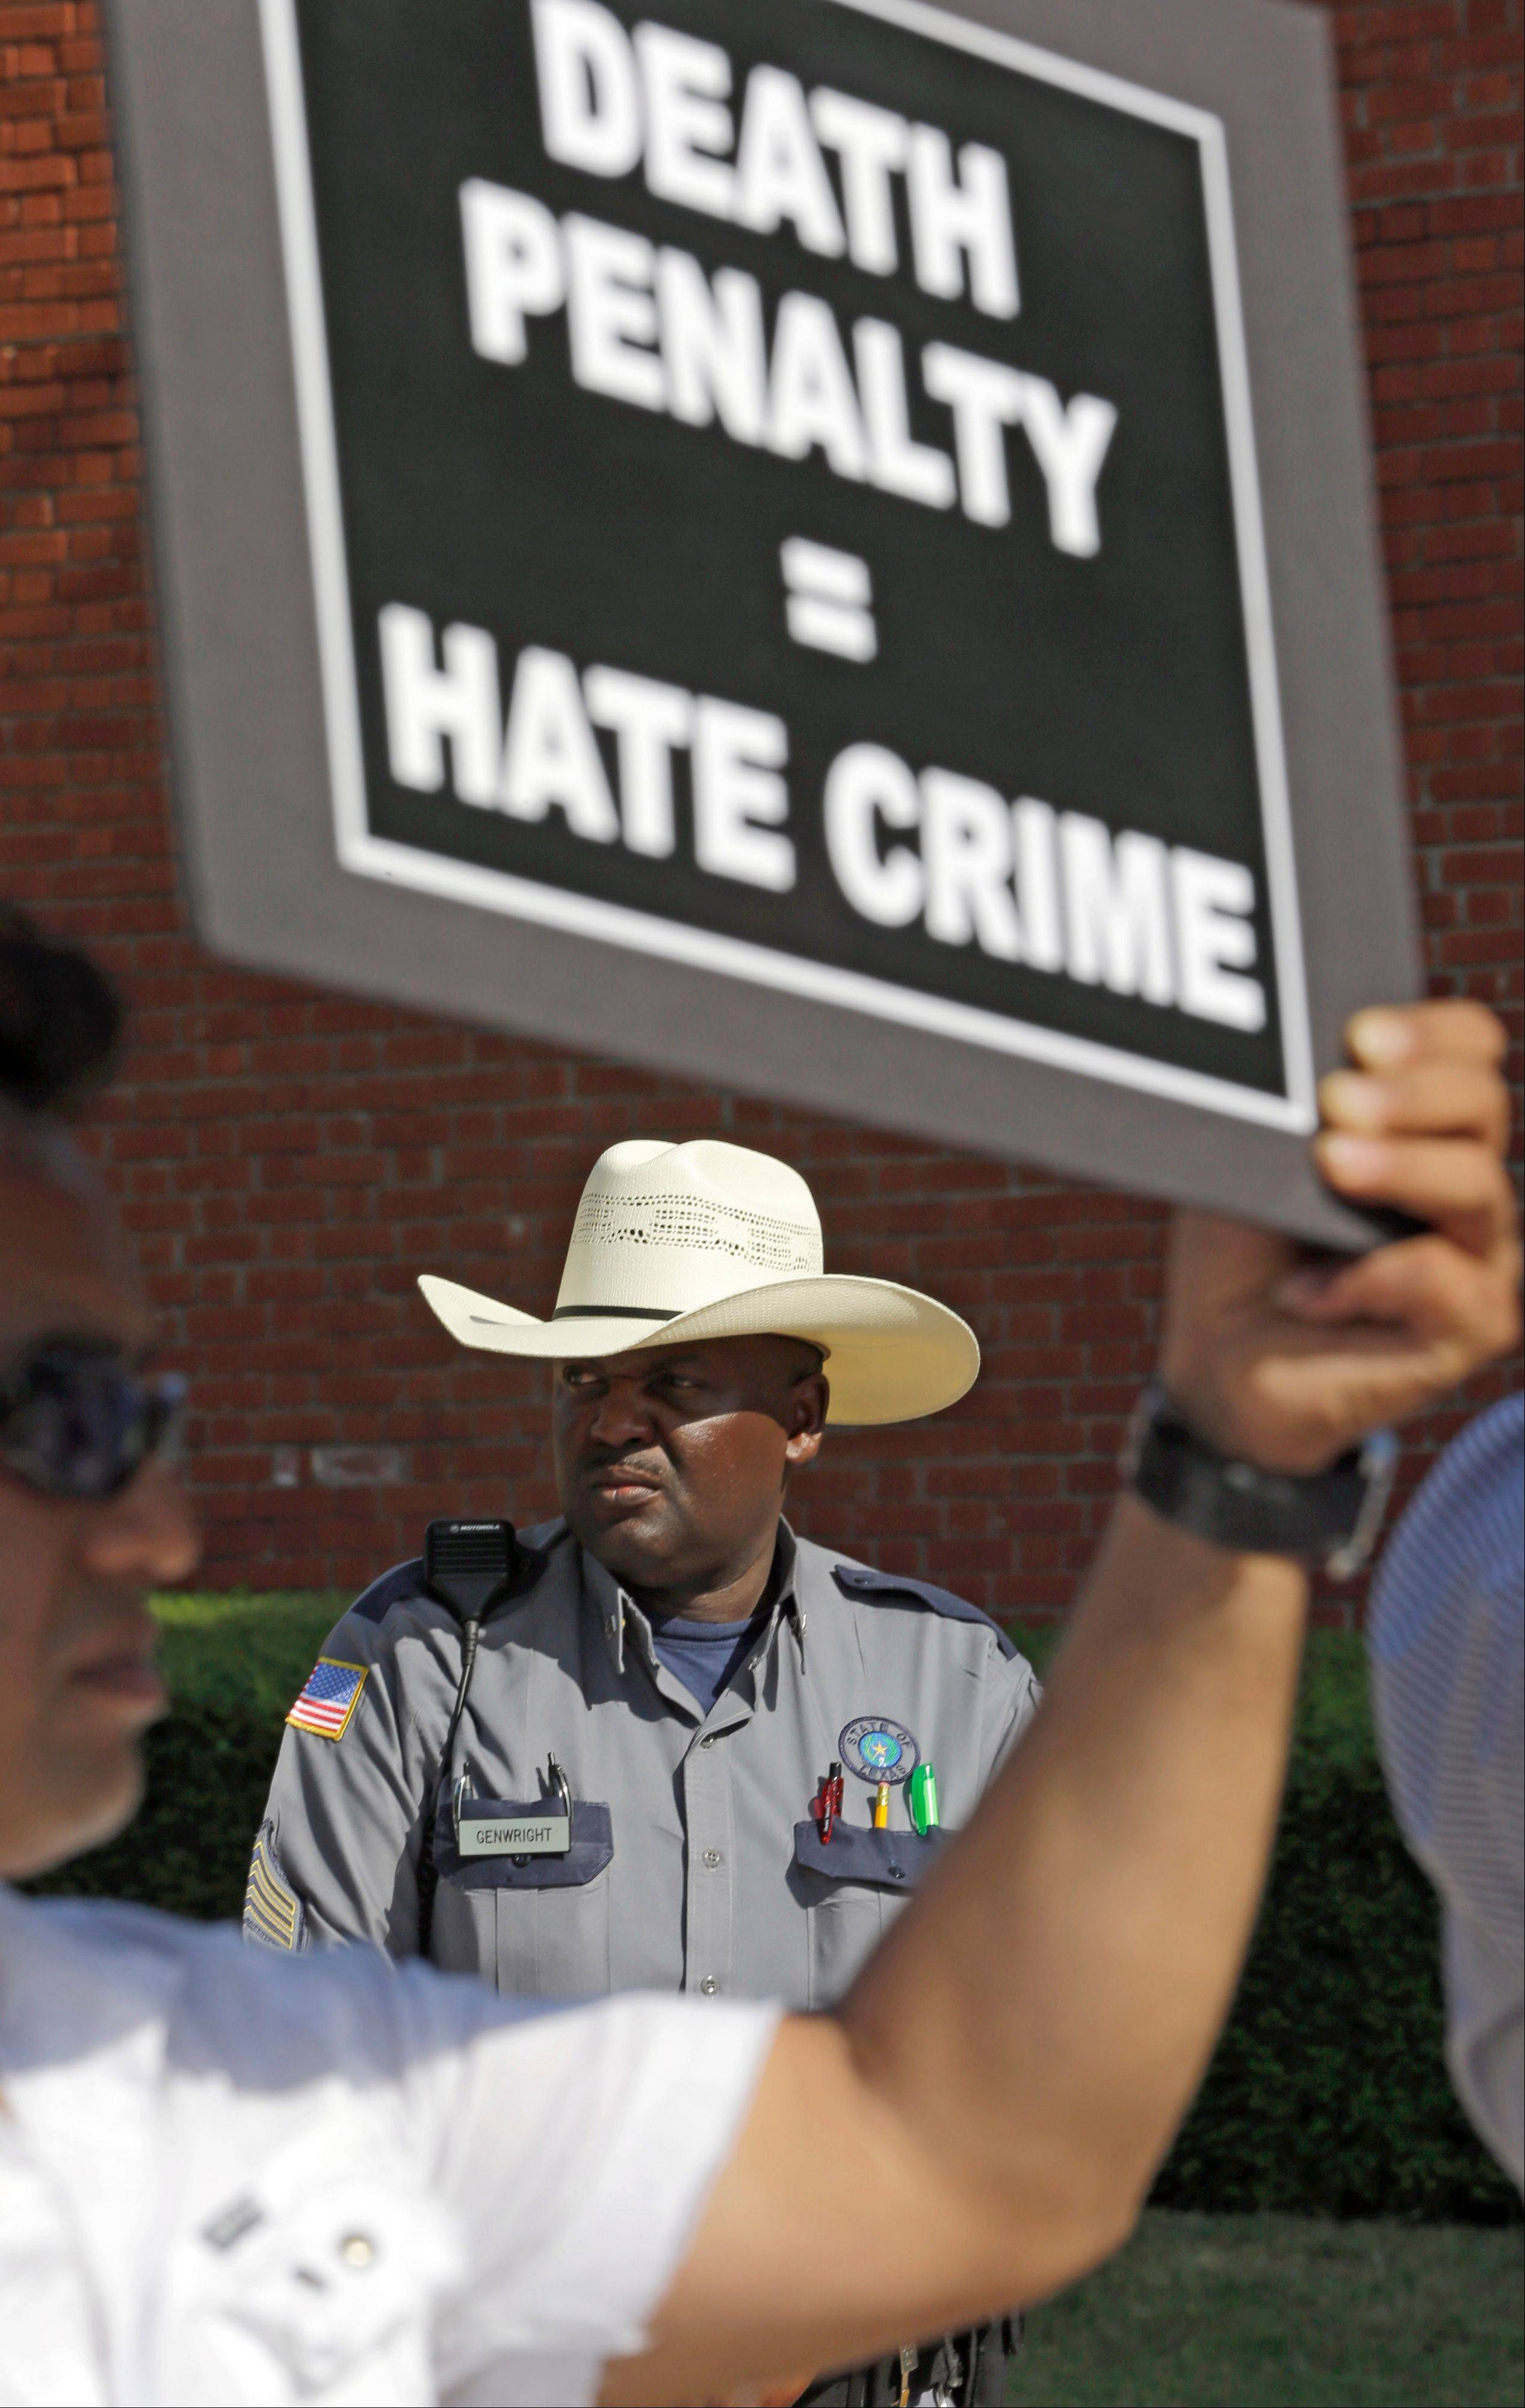 A corrections officer watches as demonstrators protest the execution of Kimberly McCarthy on Wednesday, June 26, 2013 outside the Texas Department of Criminal Justice Huntsville Unit.